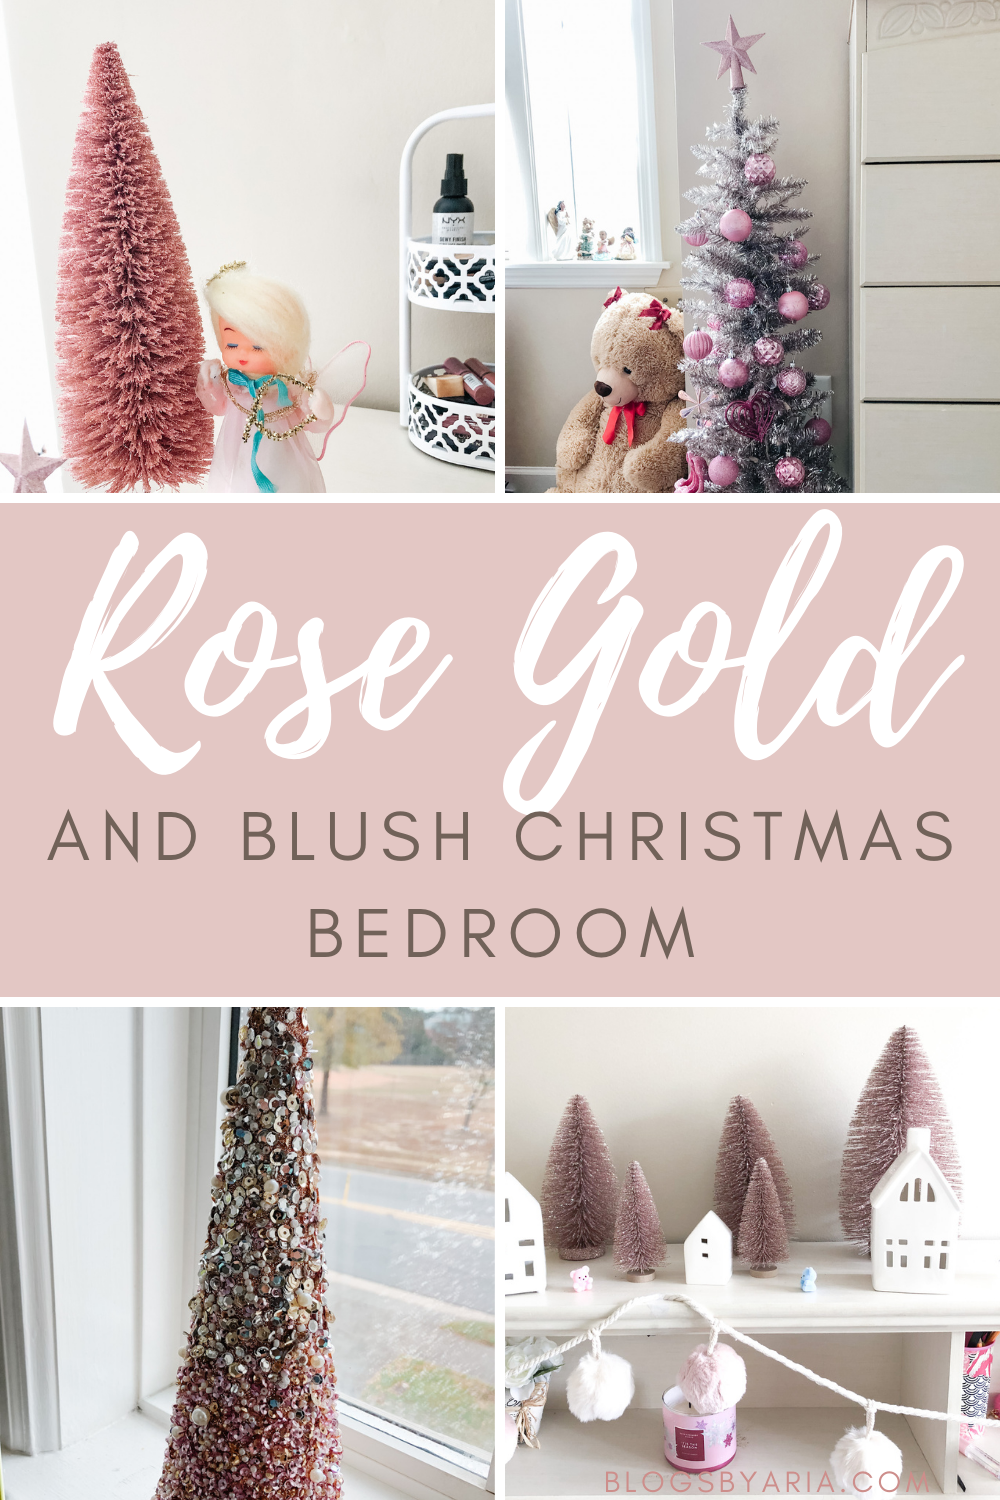 Rose Gold and Blush Christmas Bedroom